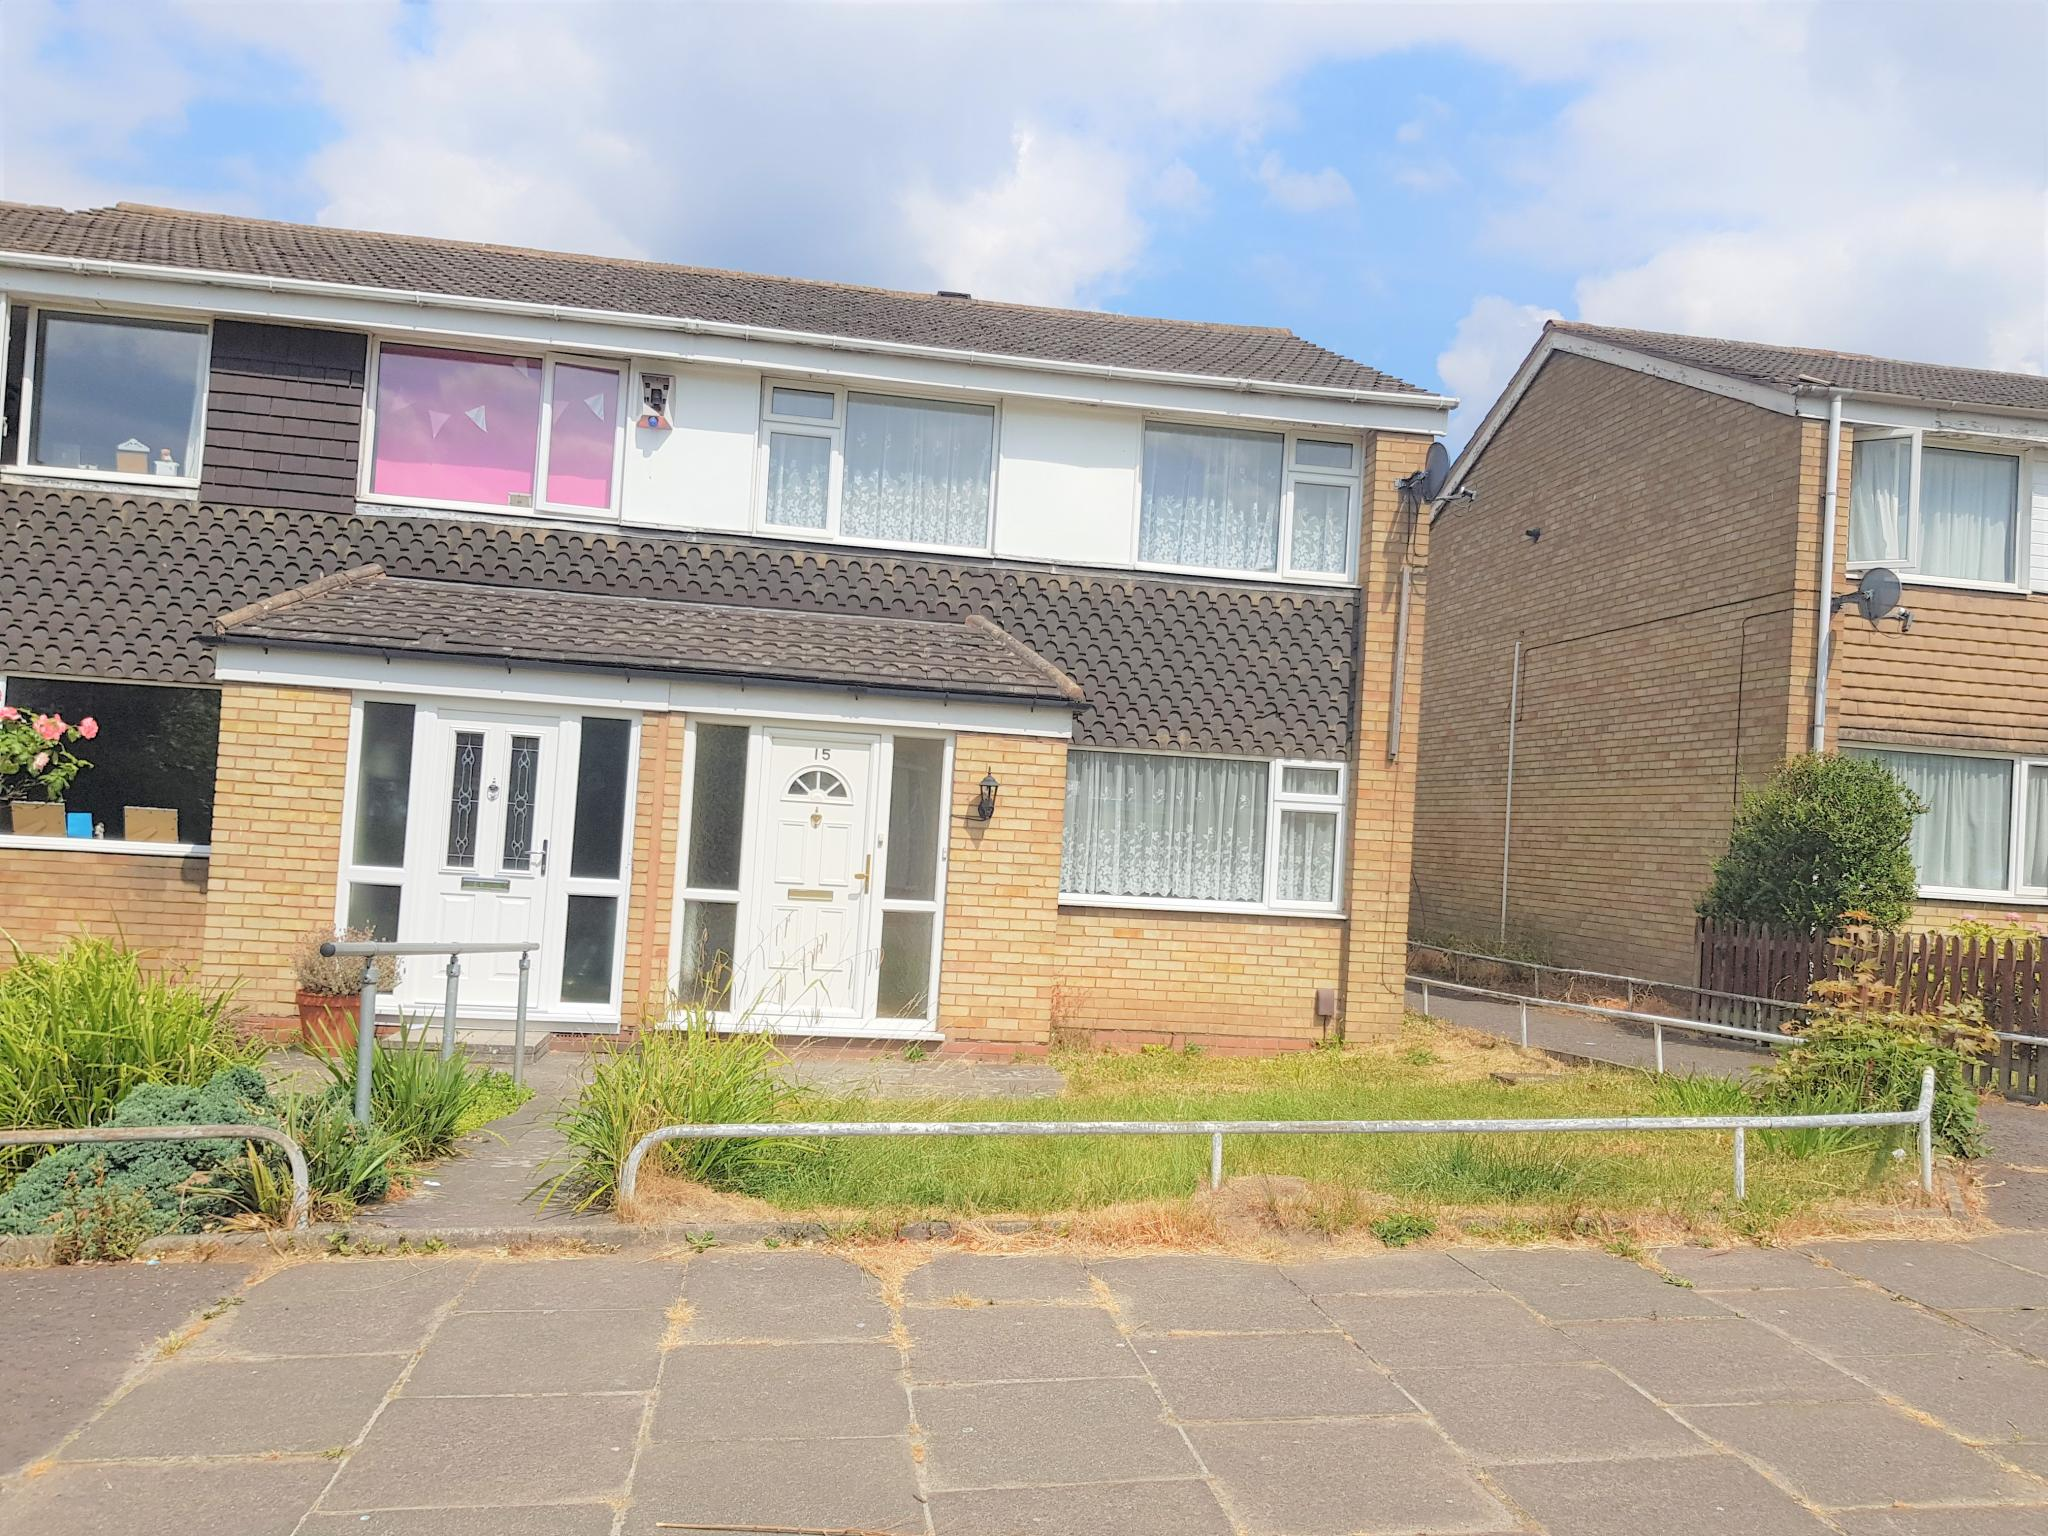 3 Bed Semi-detached House To Rent - Front View